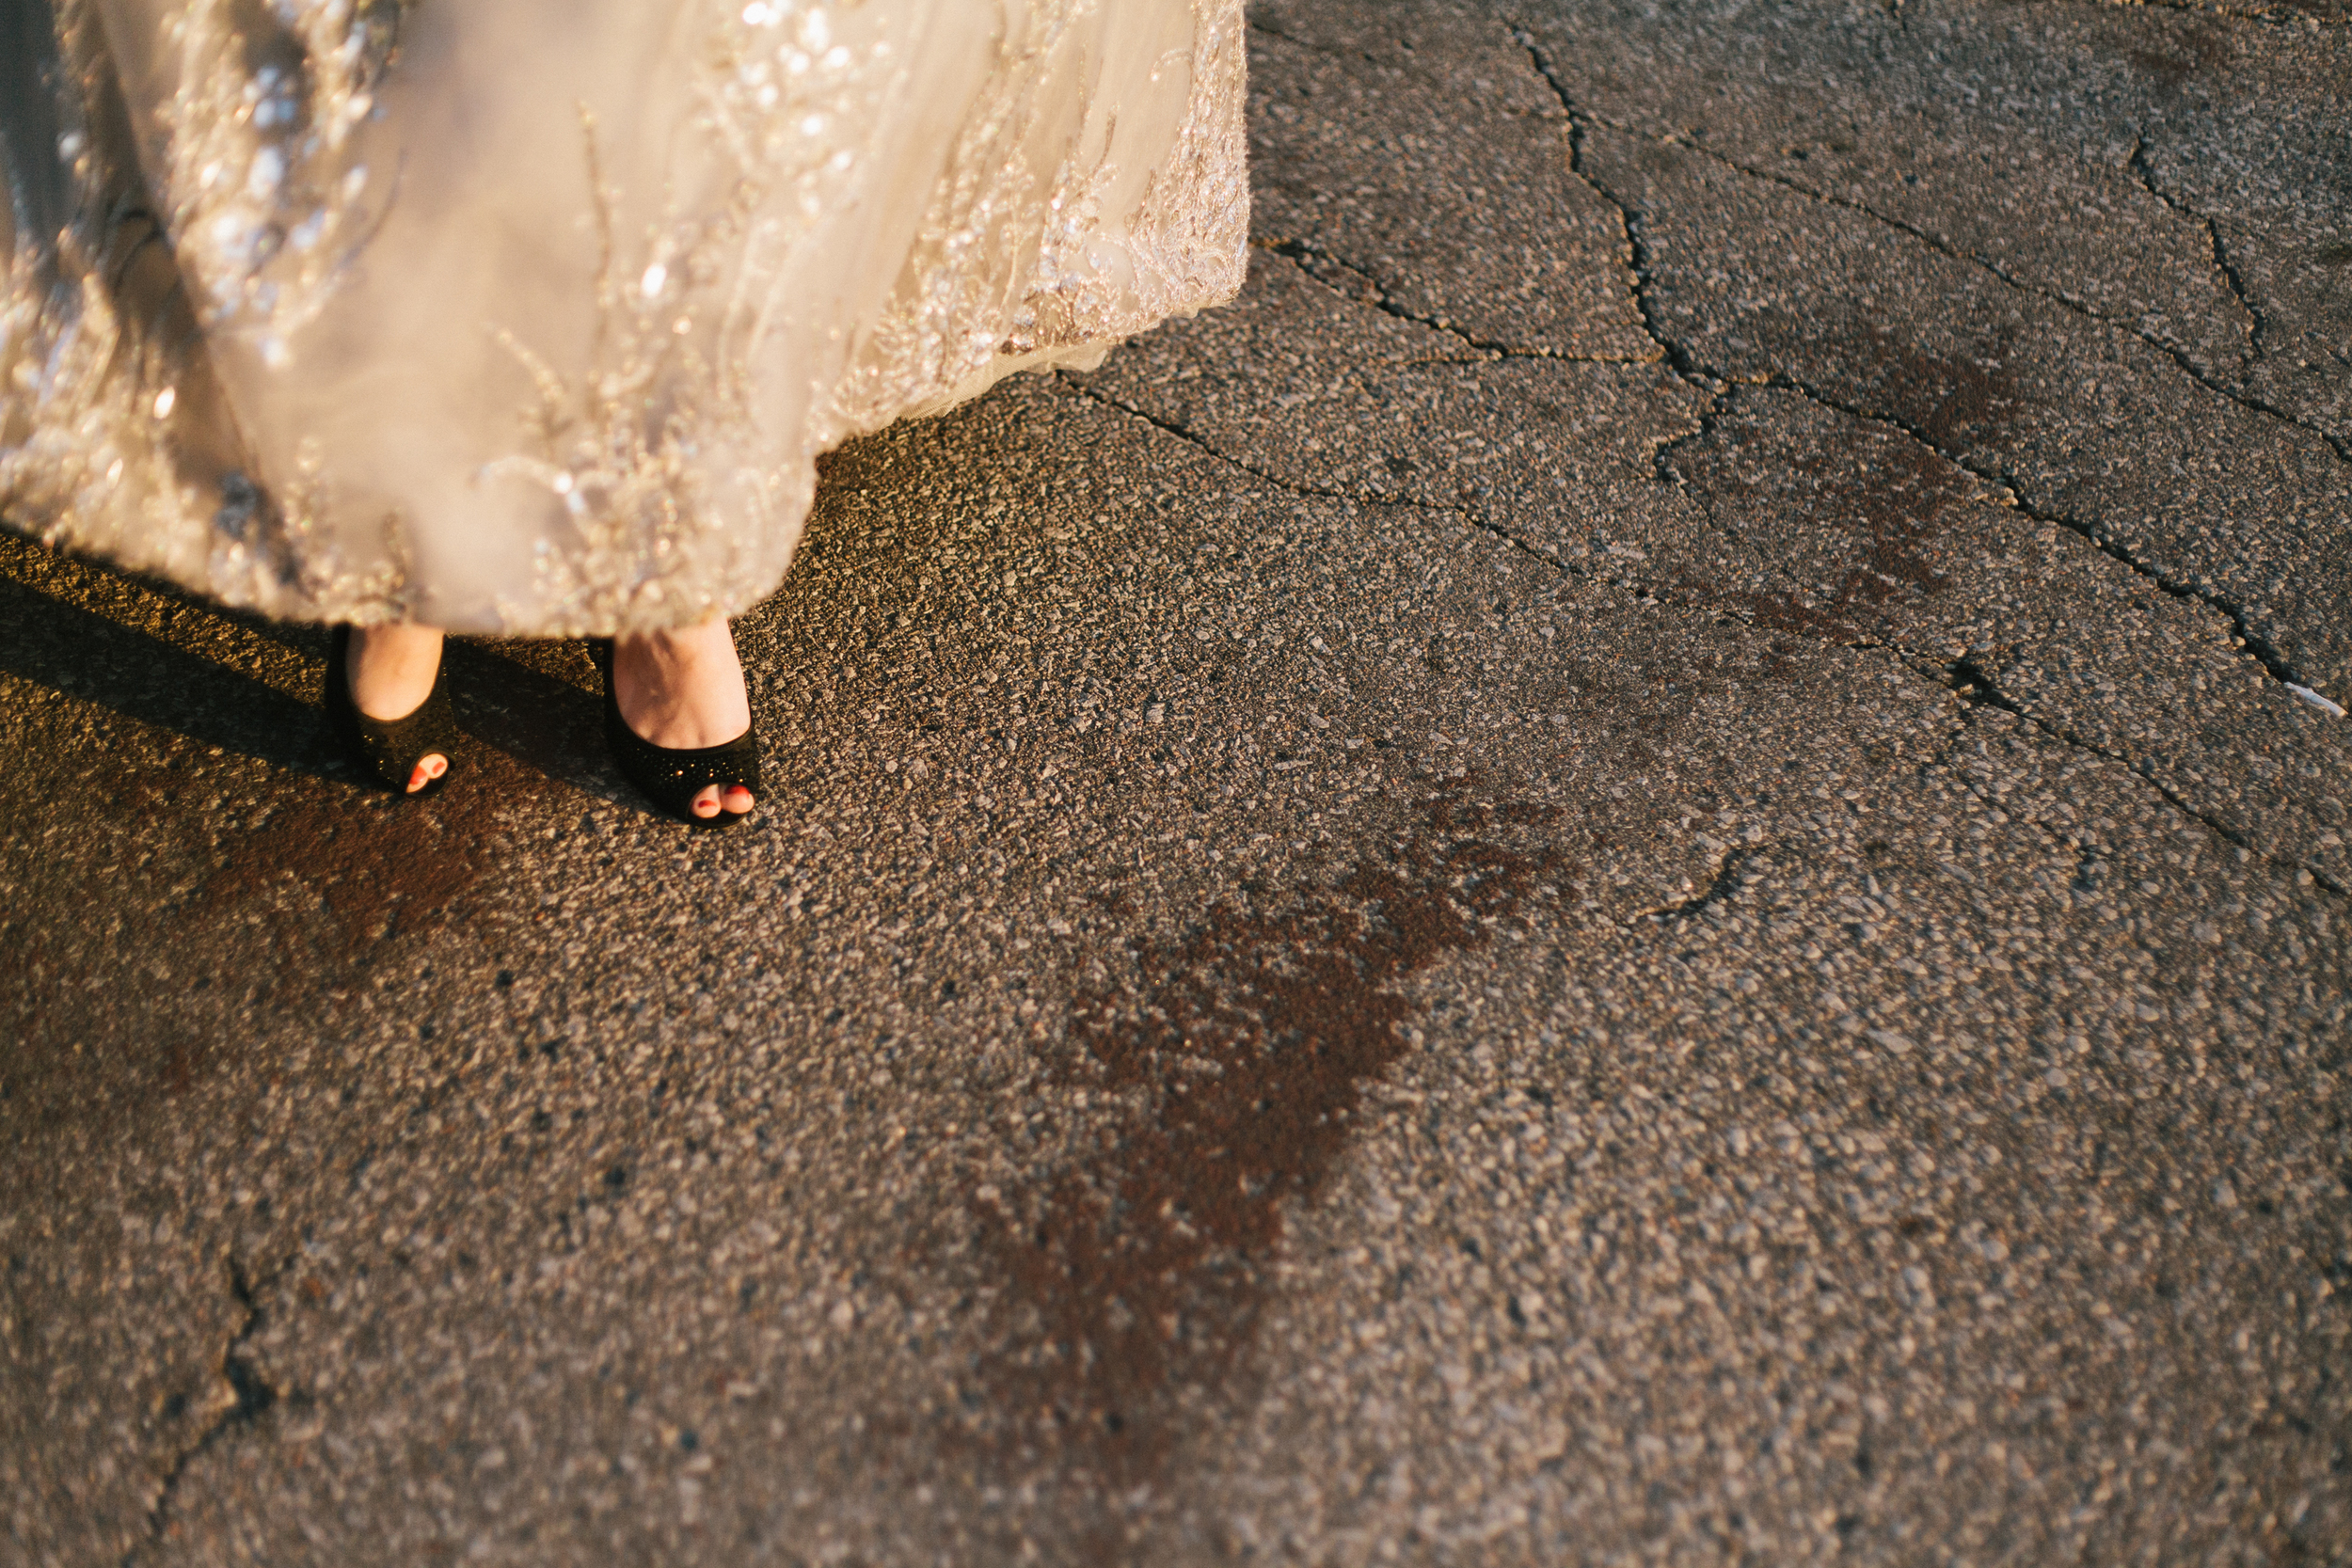 Atlantis Wedding- Michael Rousseau Photography, Theresa and Calvin, Frans diner-high end wedding photography025.jpg